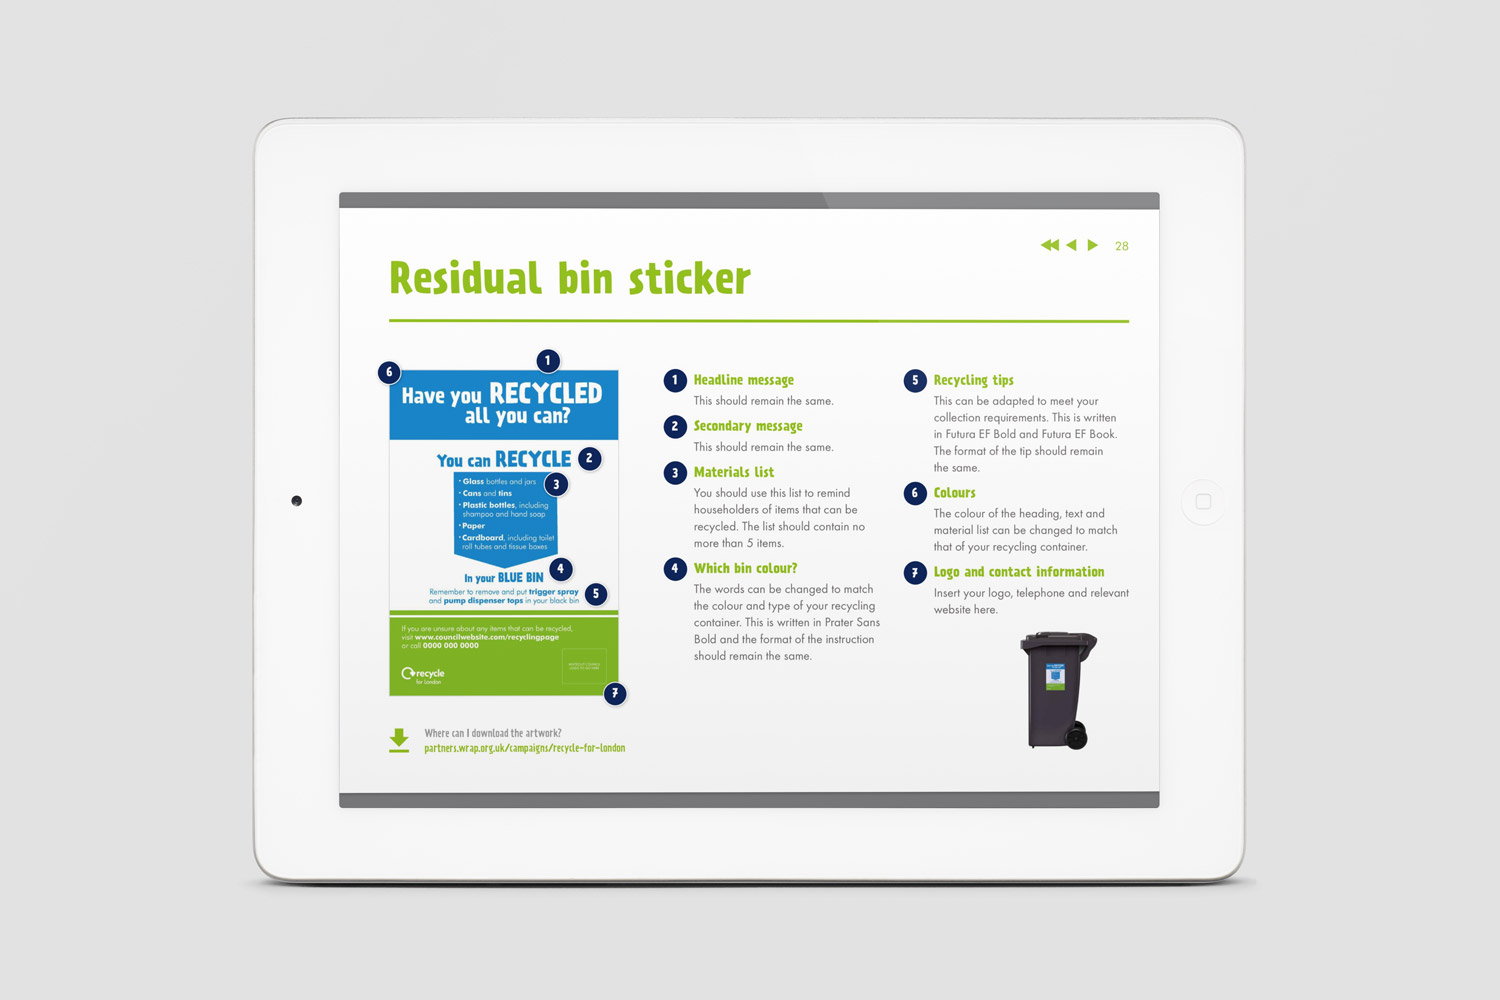 Recycle-for-London-Brand-Guidelines-bin-sticker-iPad-leaflet-by-Get-it-Sorted.jpg